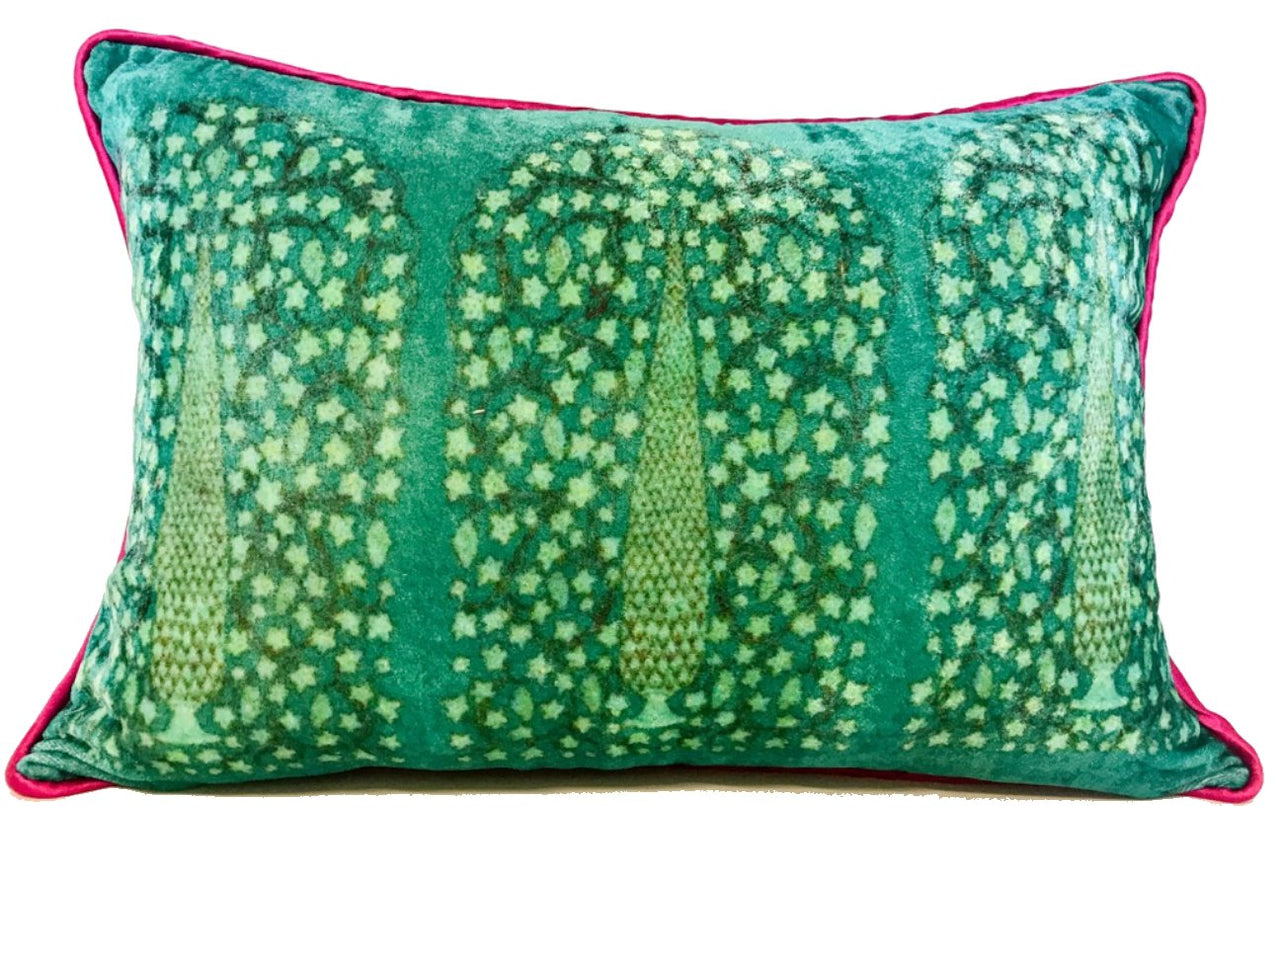 Velvet Cushion 12x18 Gree Cypress on Turquoise background - Maison Fusion